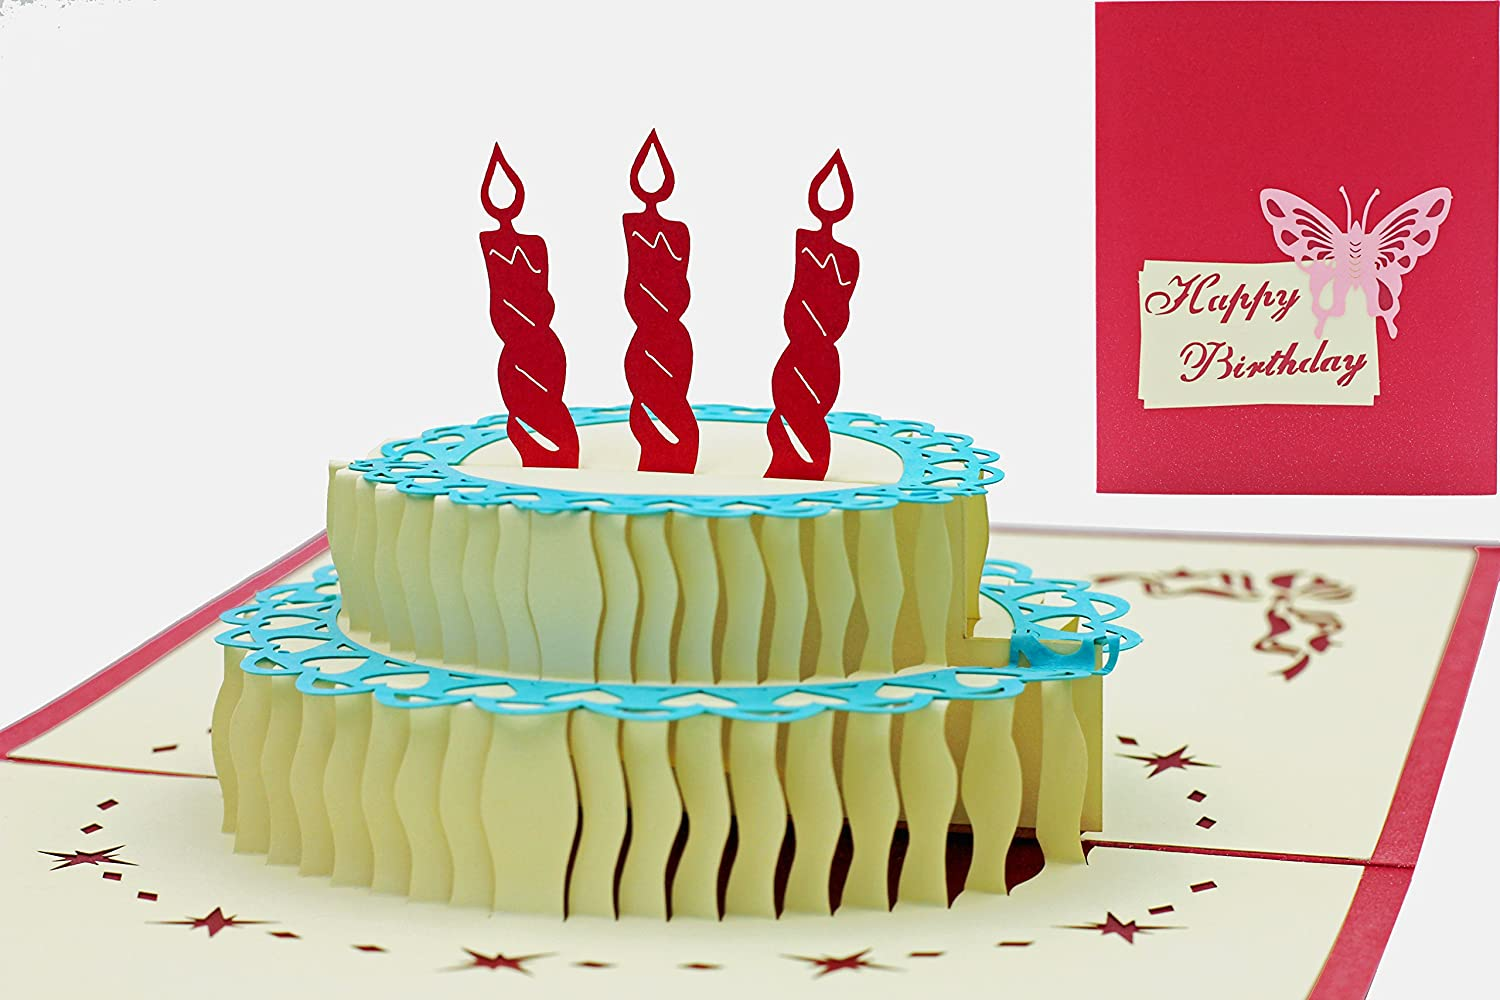 Thorani 3D Pop Up Greeting Card Buon Compleanno / Happy Birthday - Torta di Compleanno con Candele FRESPA GmbH